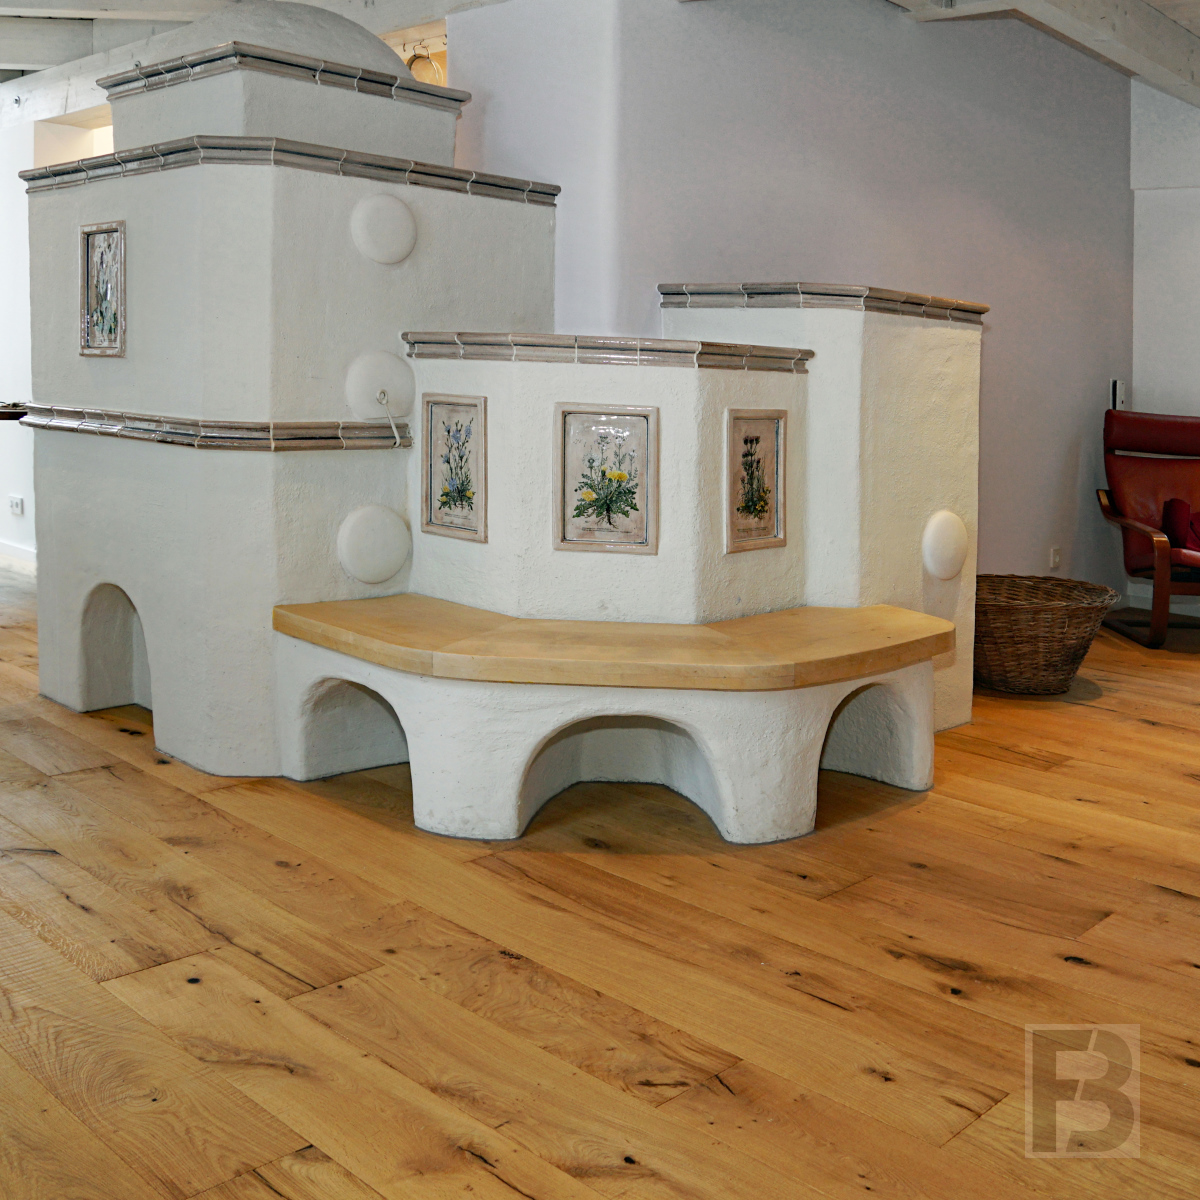 gallery-images